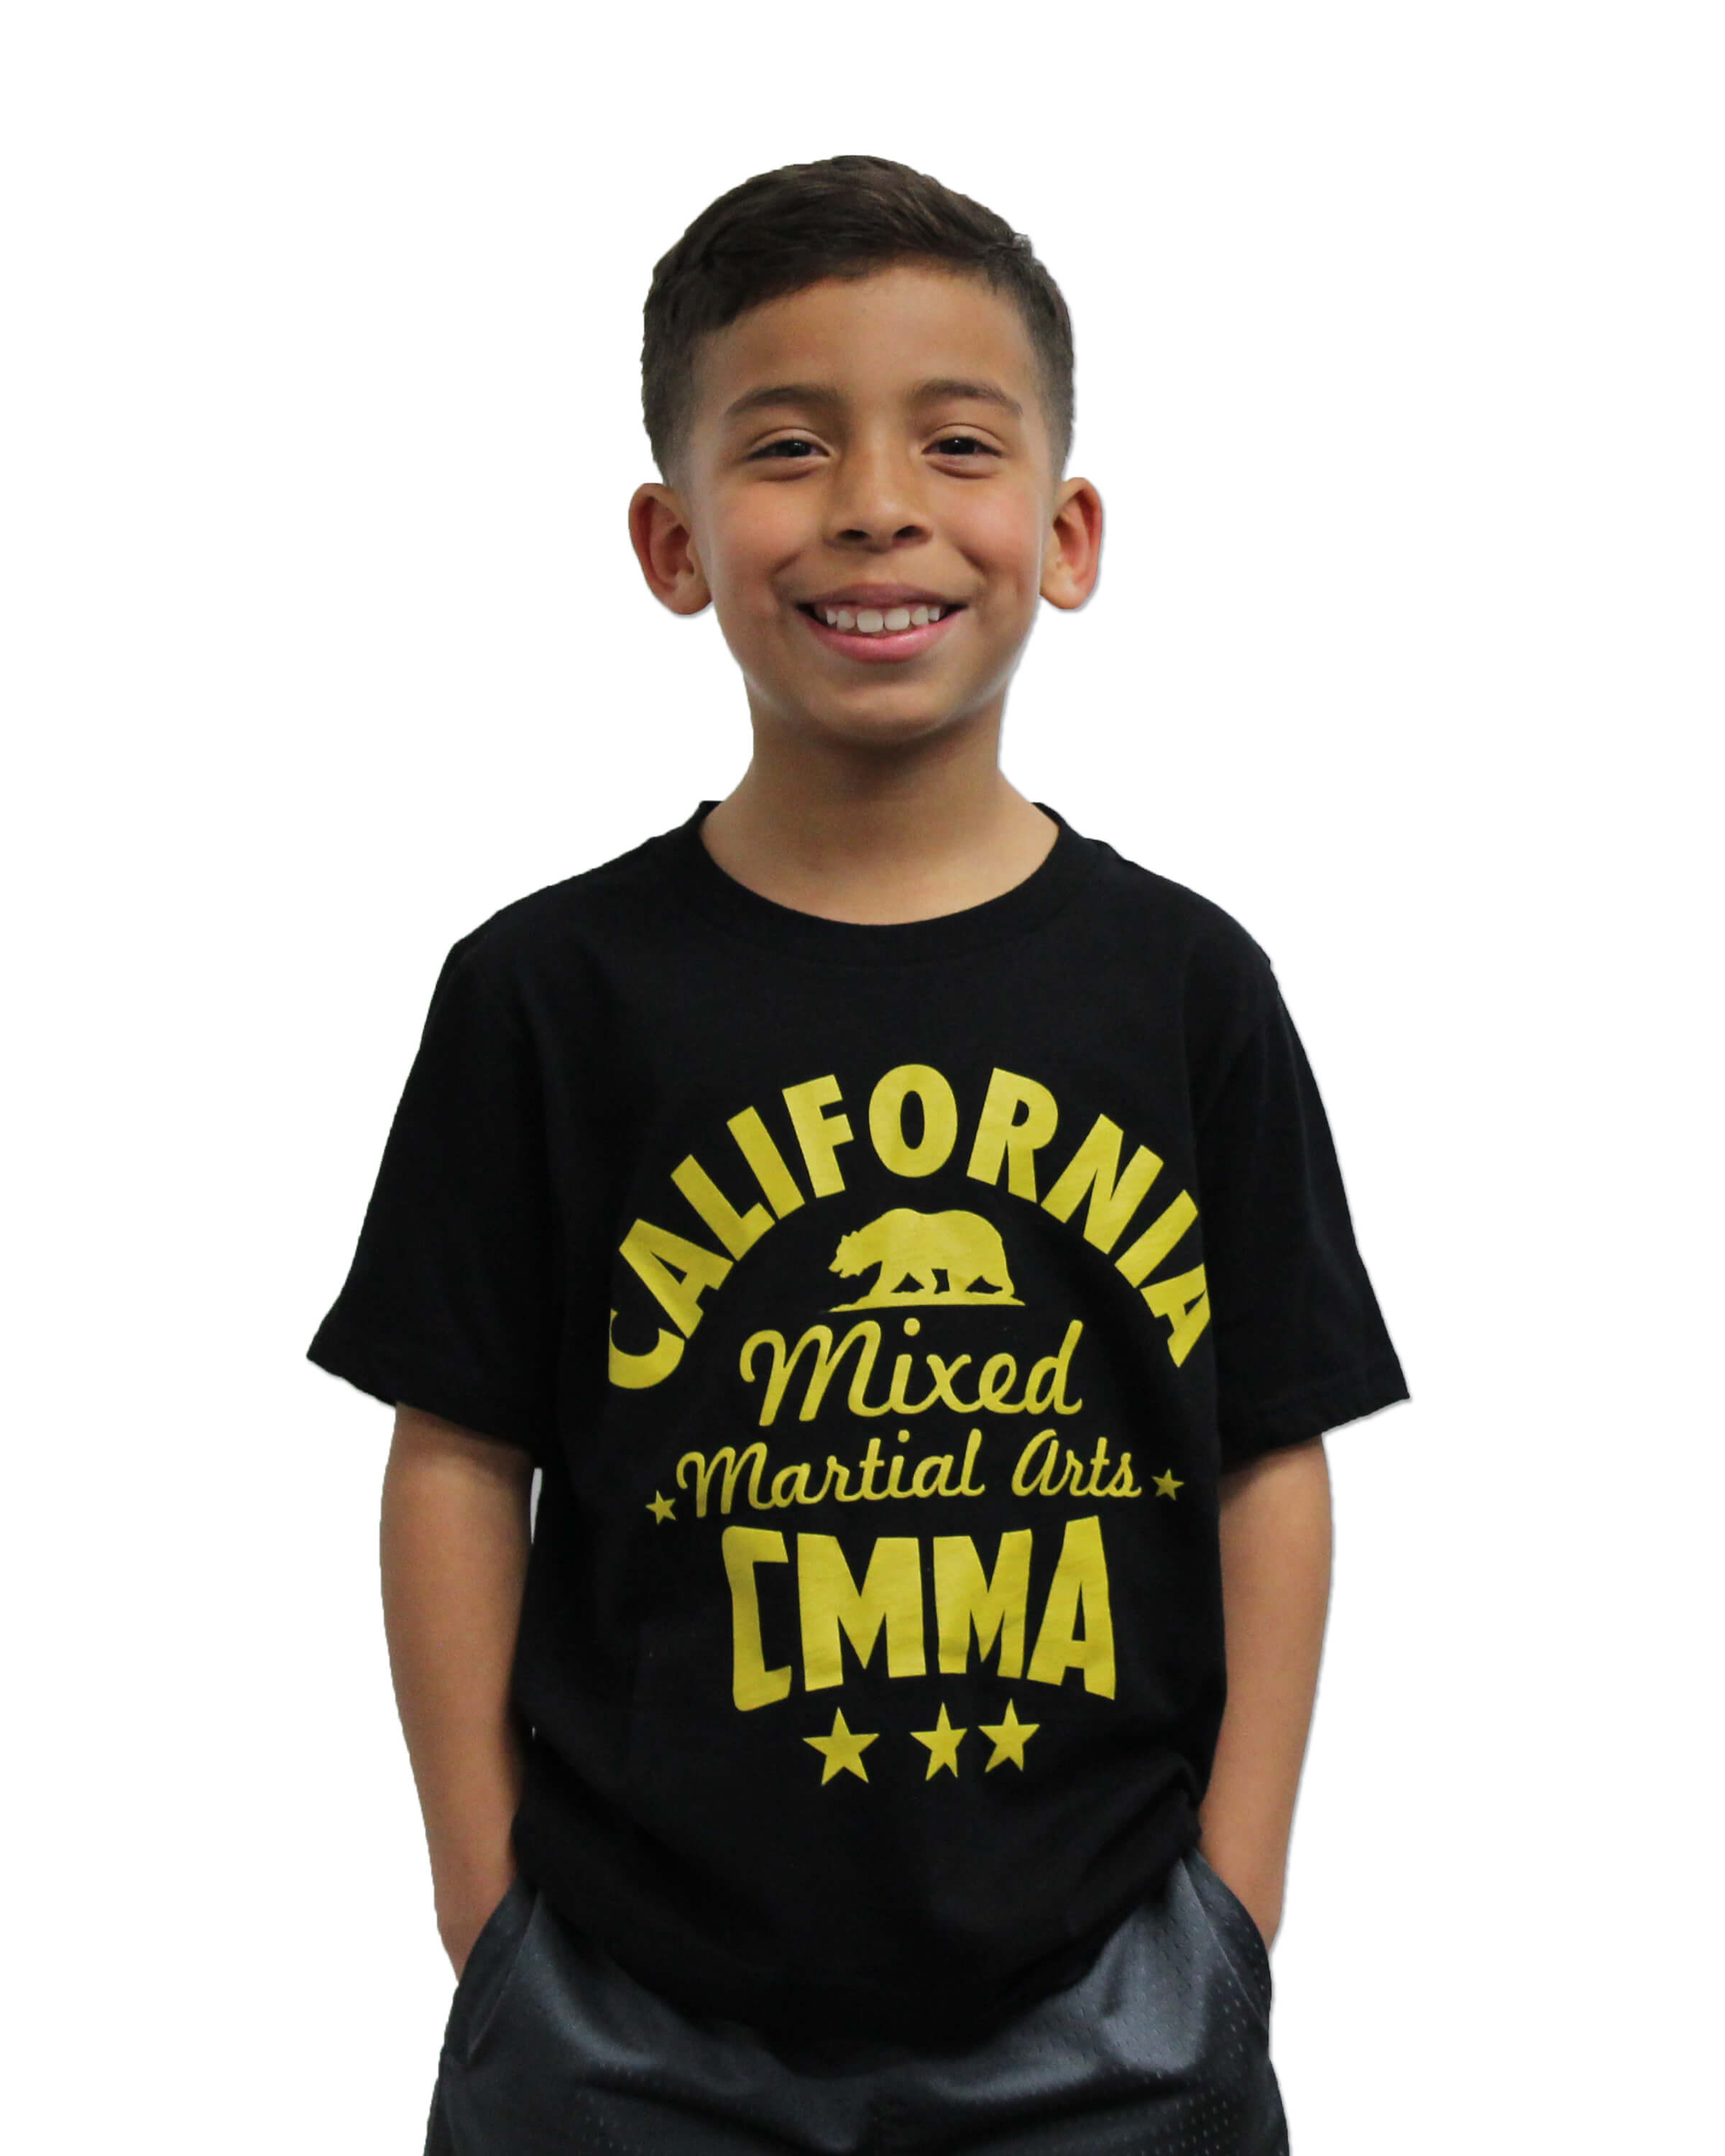 CMMA Kids T-Shirt Black/Yellow